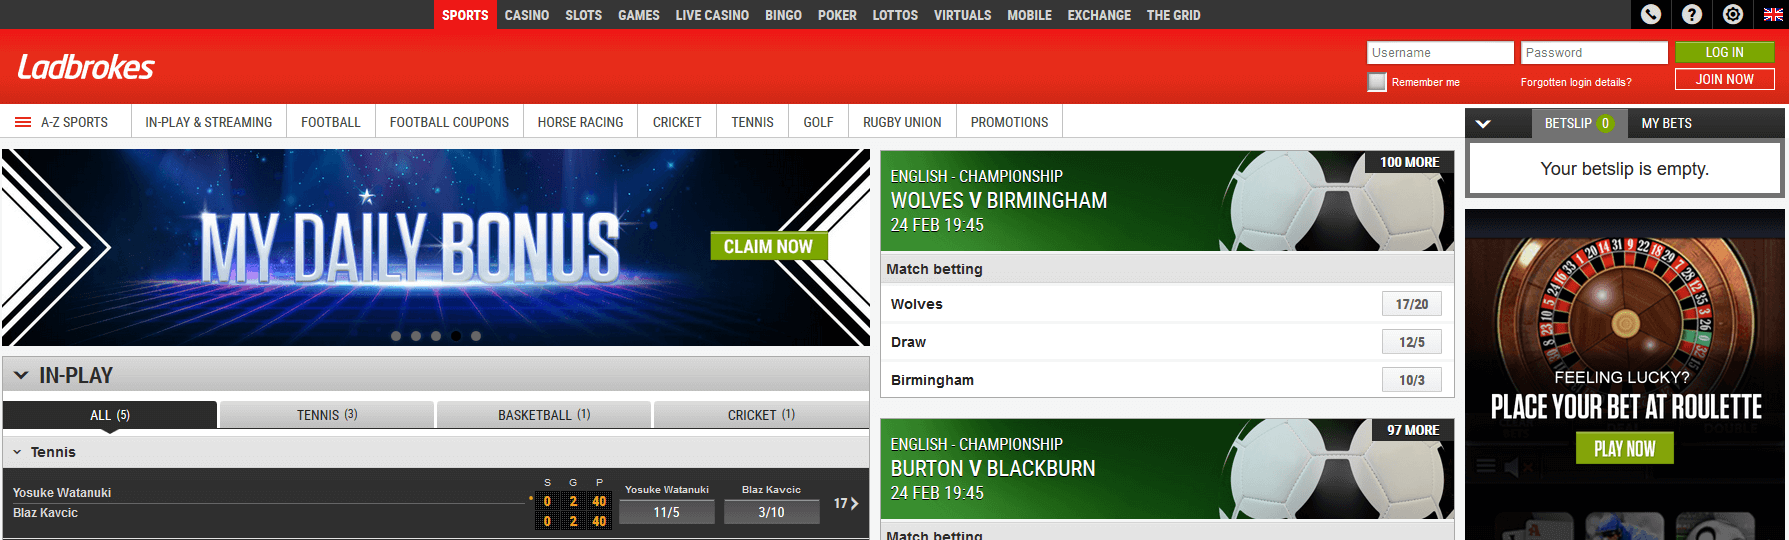 ladbrokes sports login